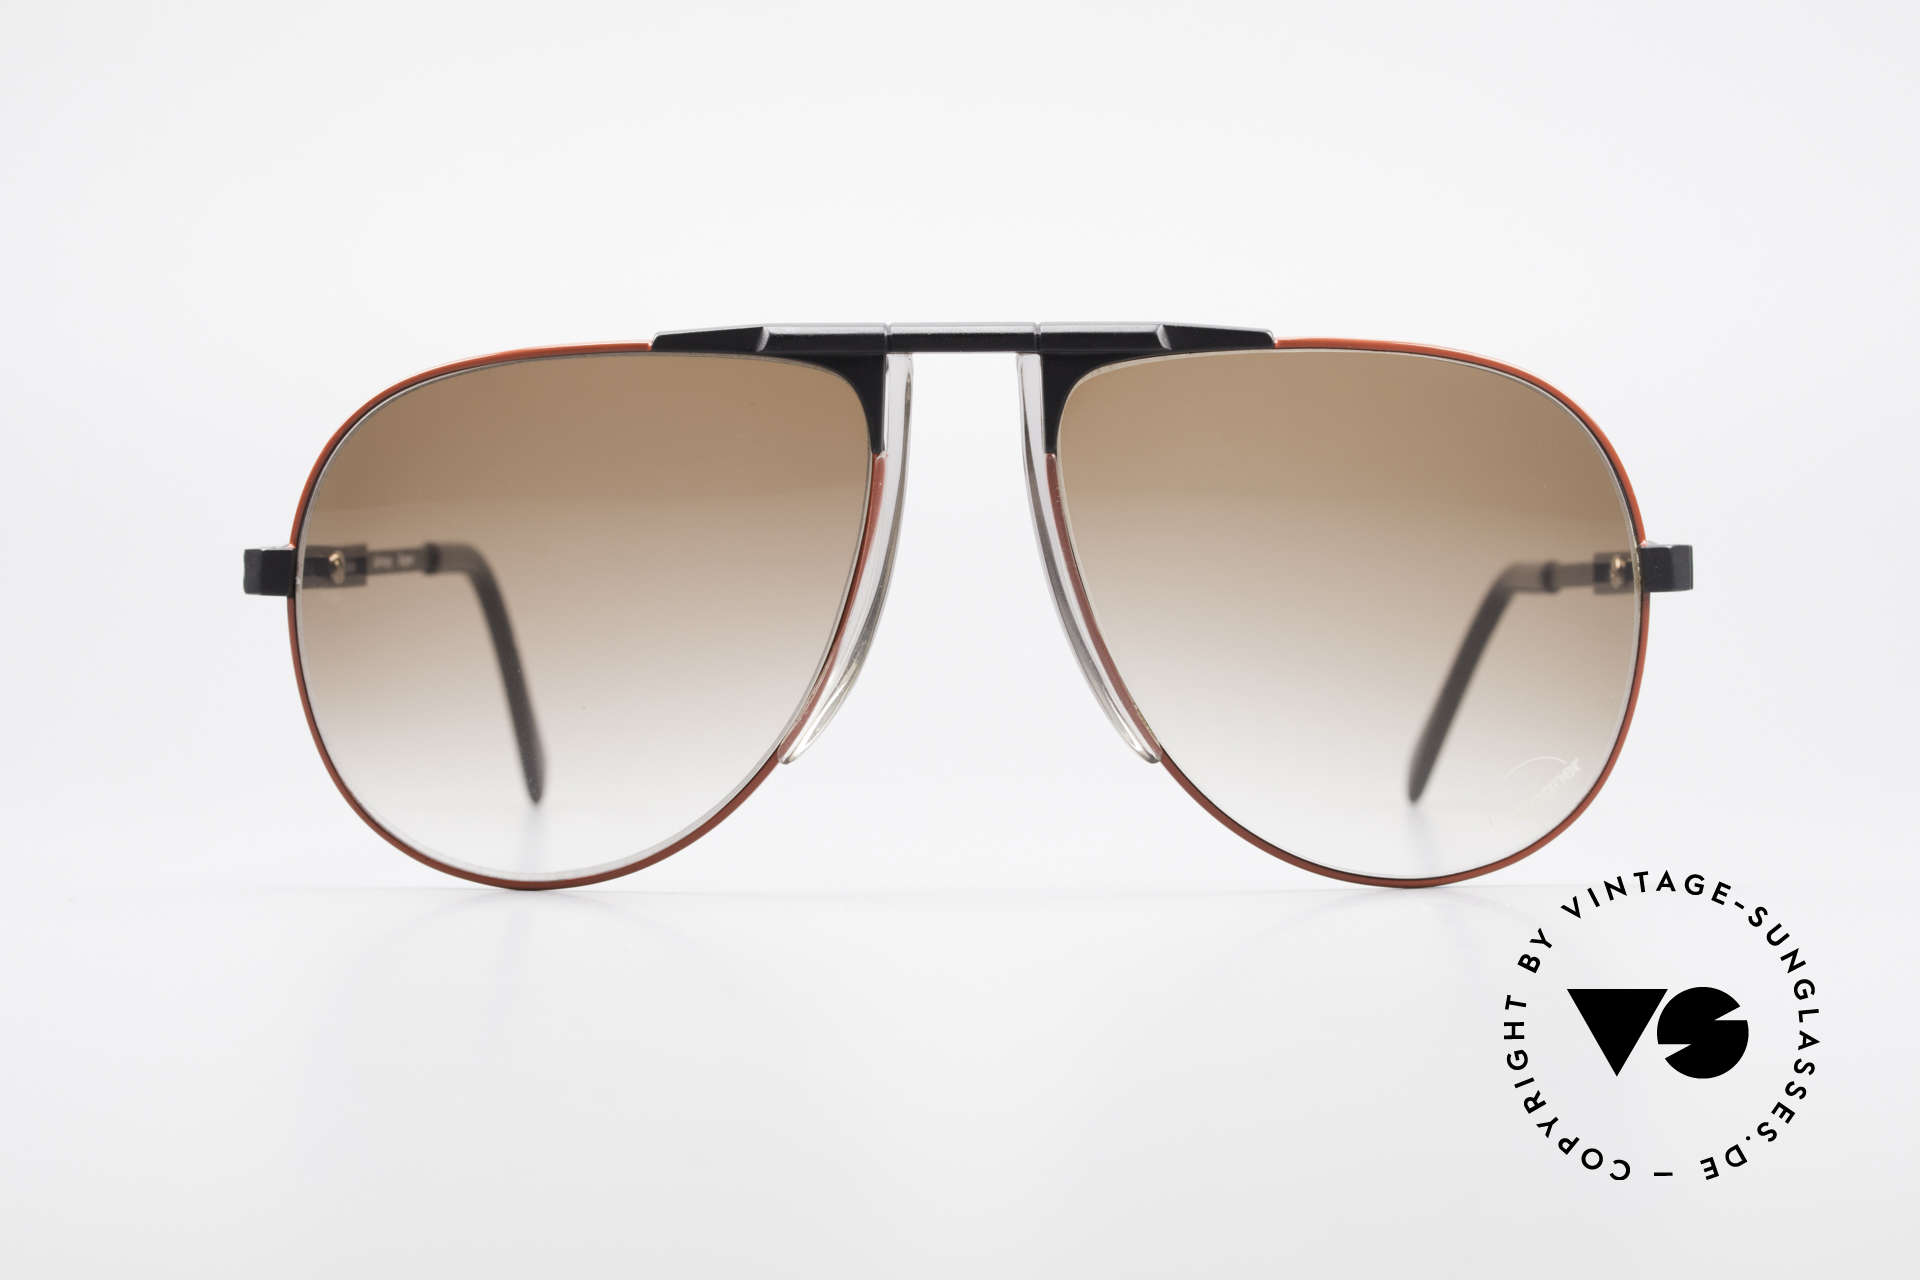 Willy Bogner 7011 Adjustable 80's Sunglasses, steplessely variable temples by Eschenbach; practical, Made for Men